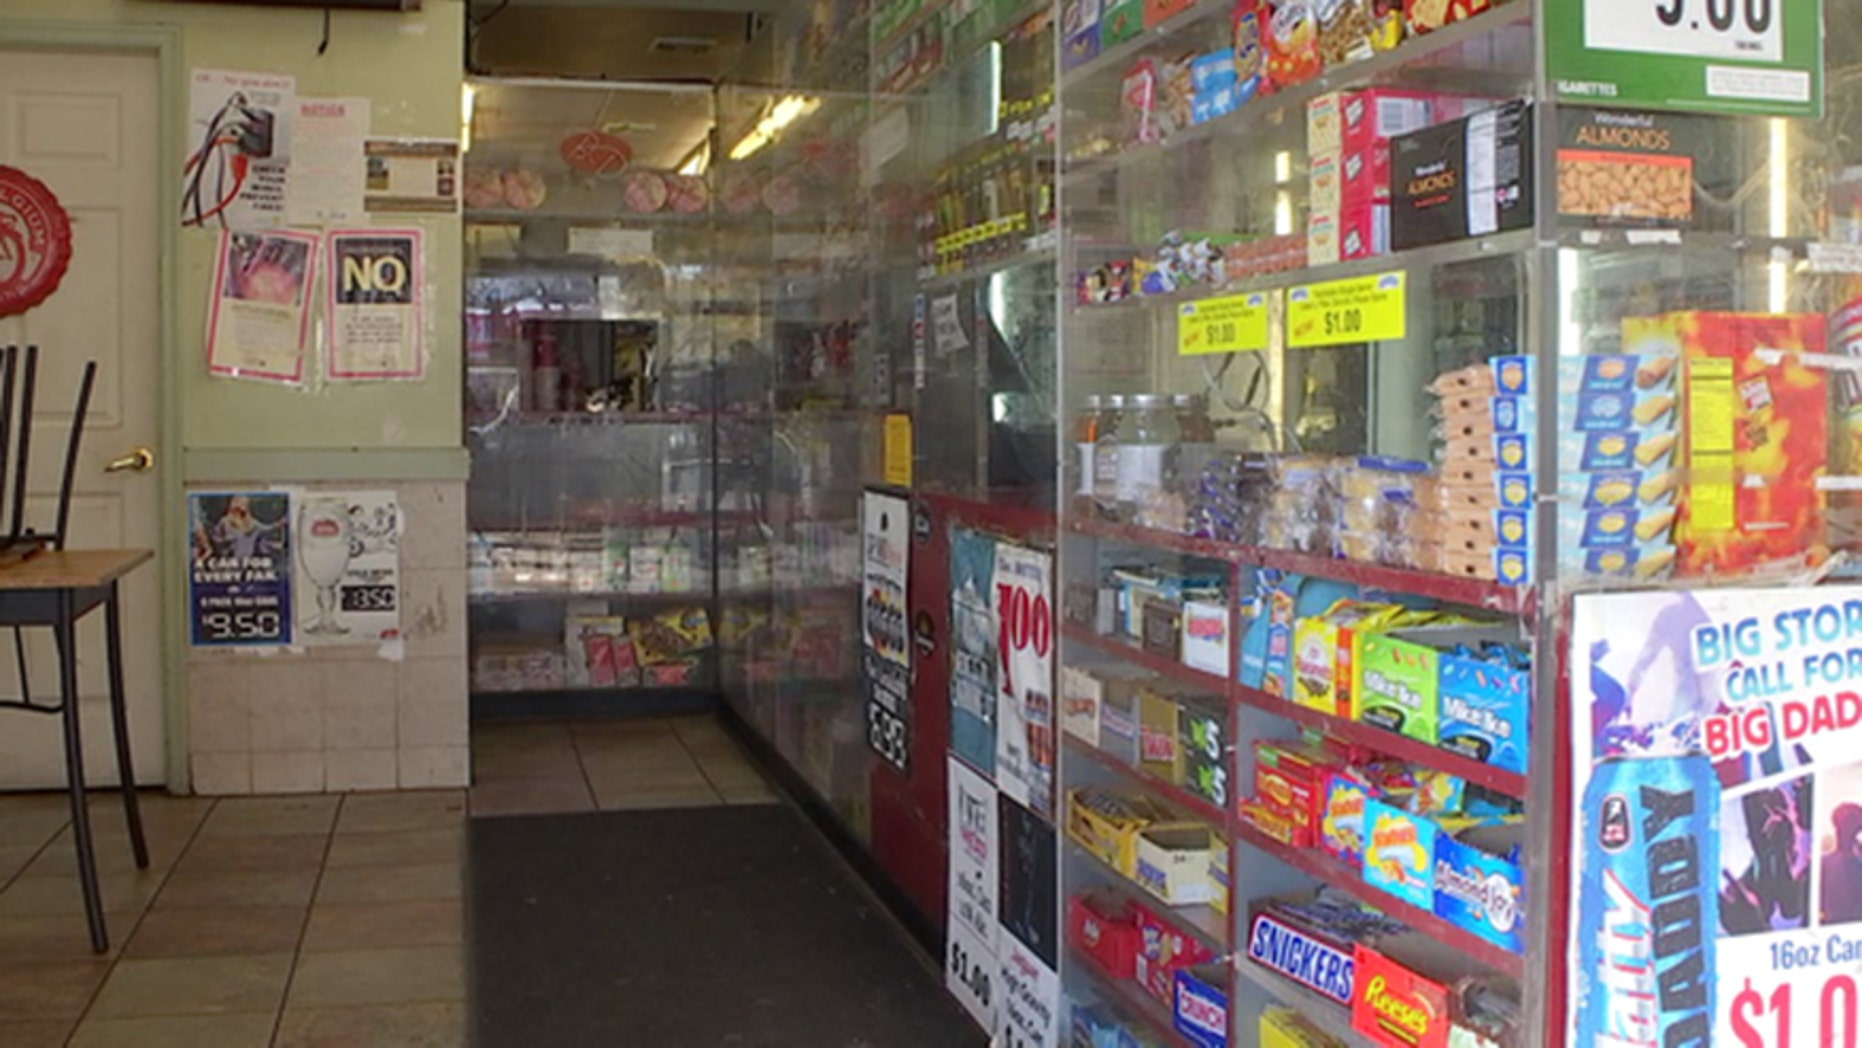 Bulletproof glass lines the counter of a deli in Philadelphia.